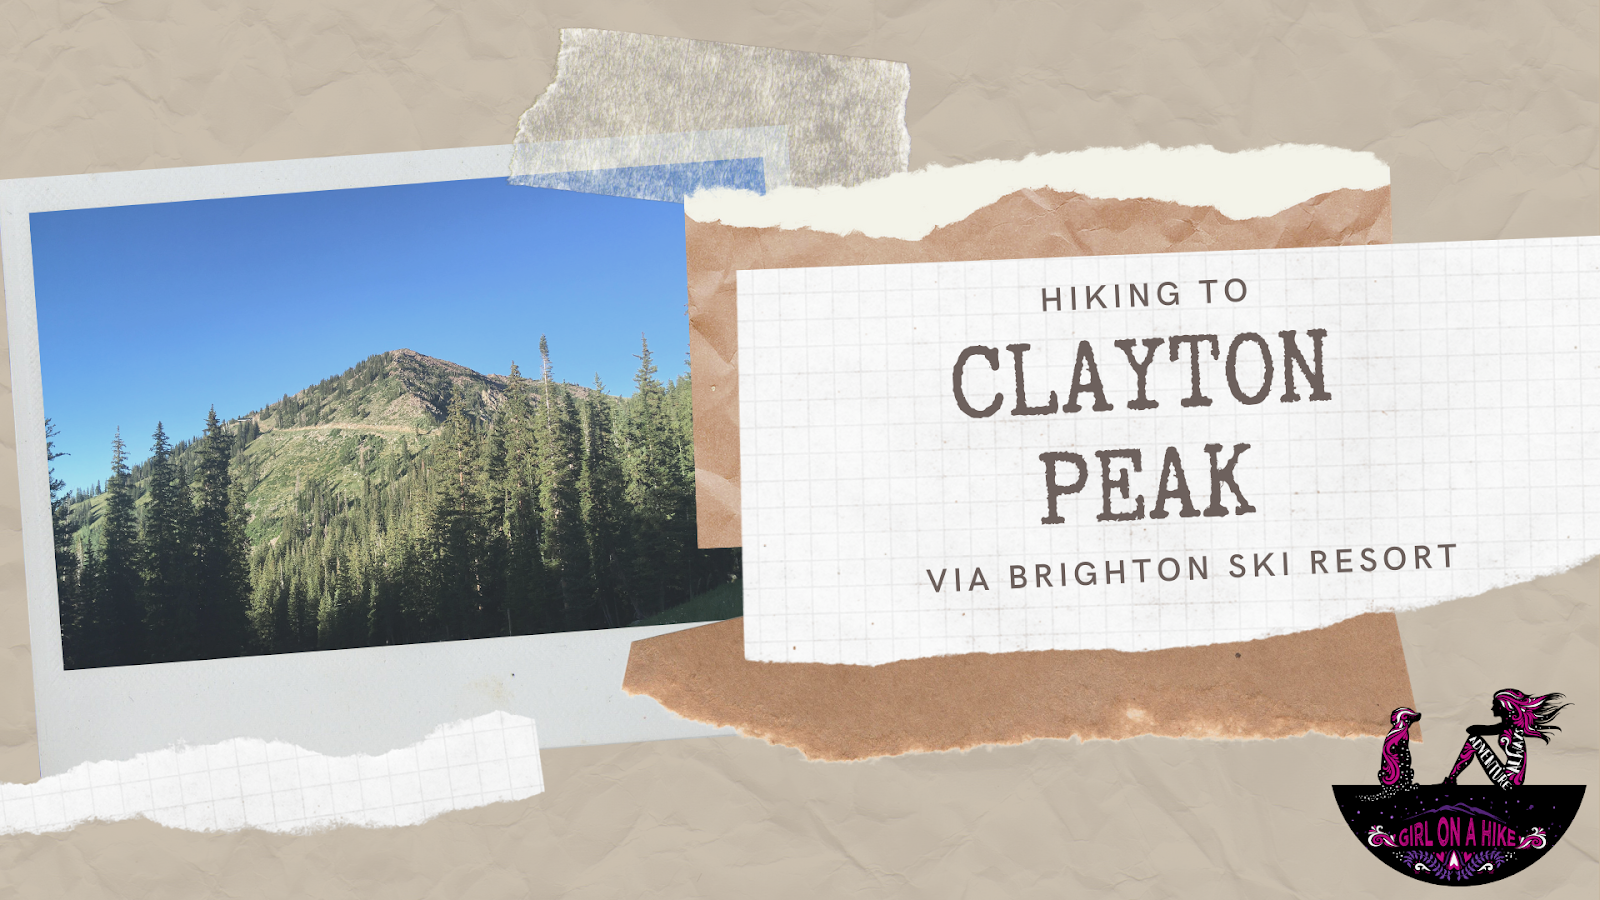 Hike to Clayton Peak via Brighton Ski Resort